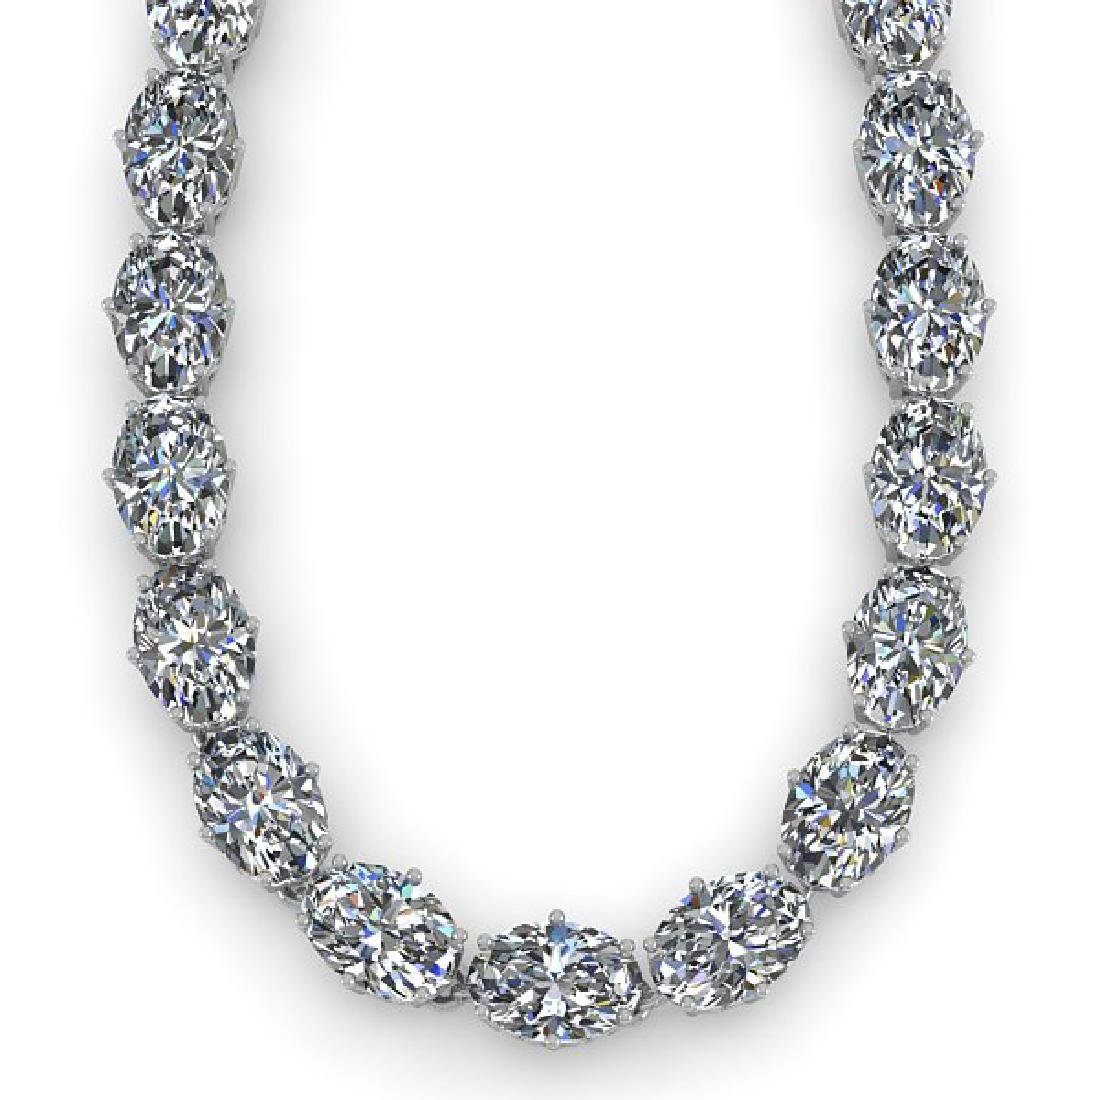 30 CTW Oval Cut SI Diamond Necklace 18K White Gold - 2